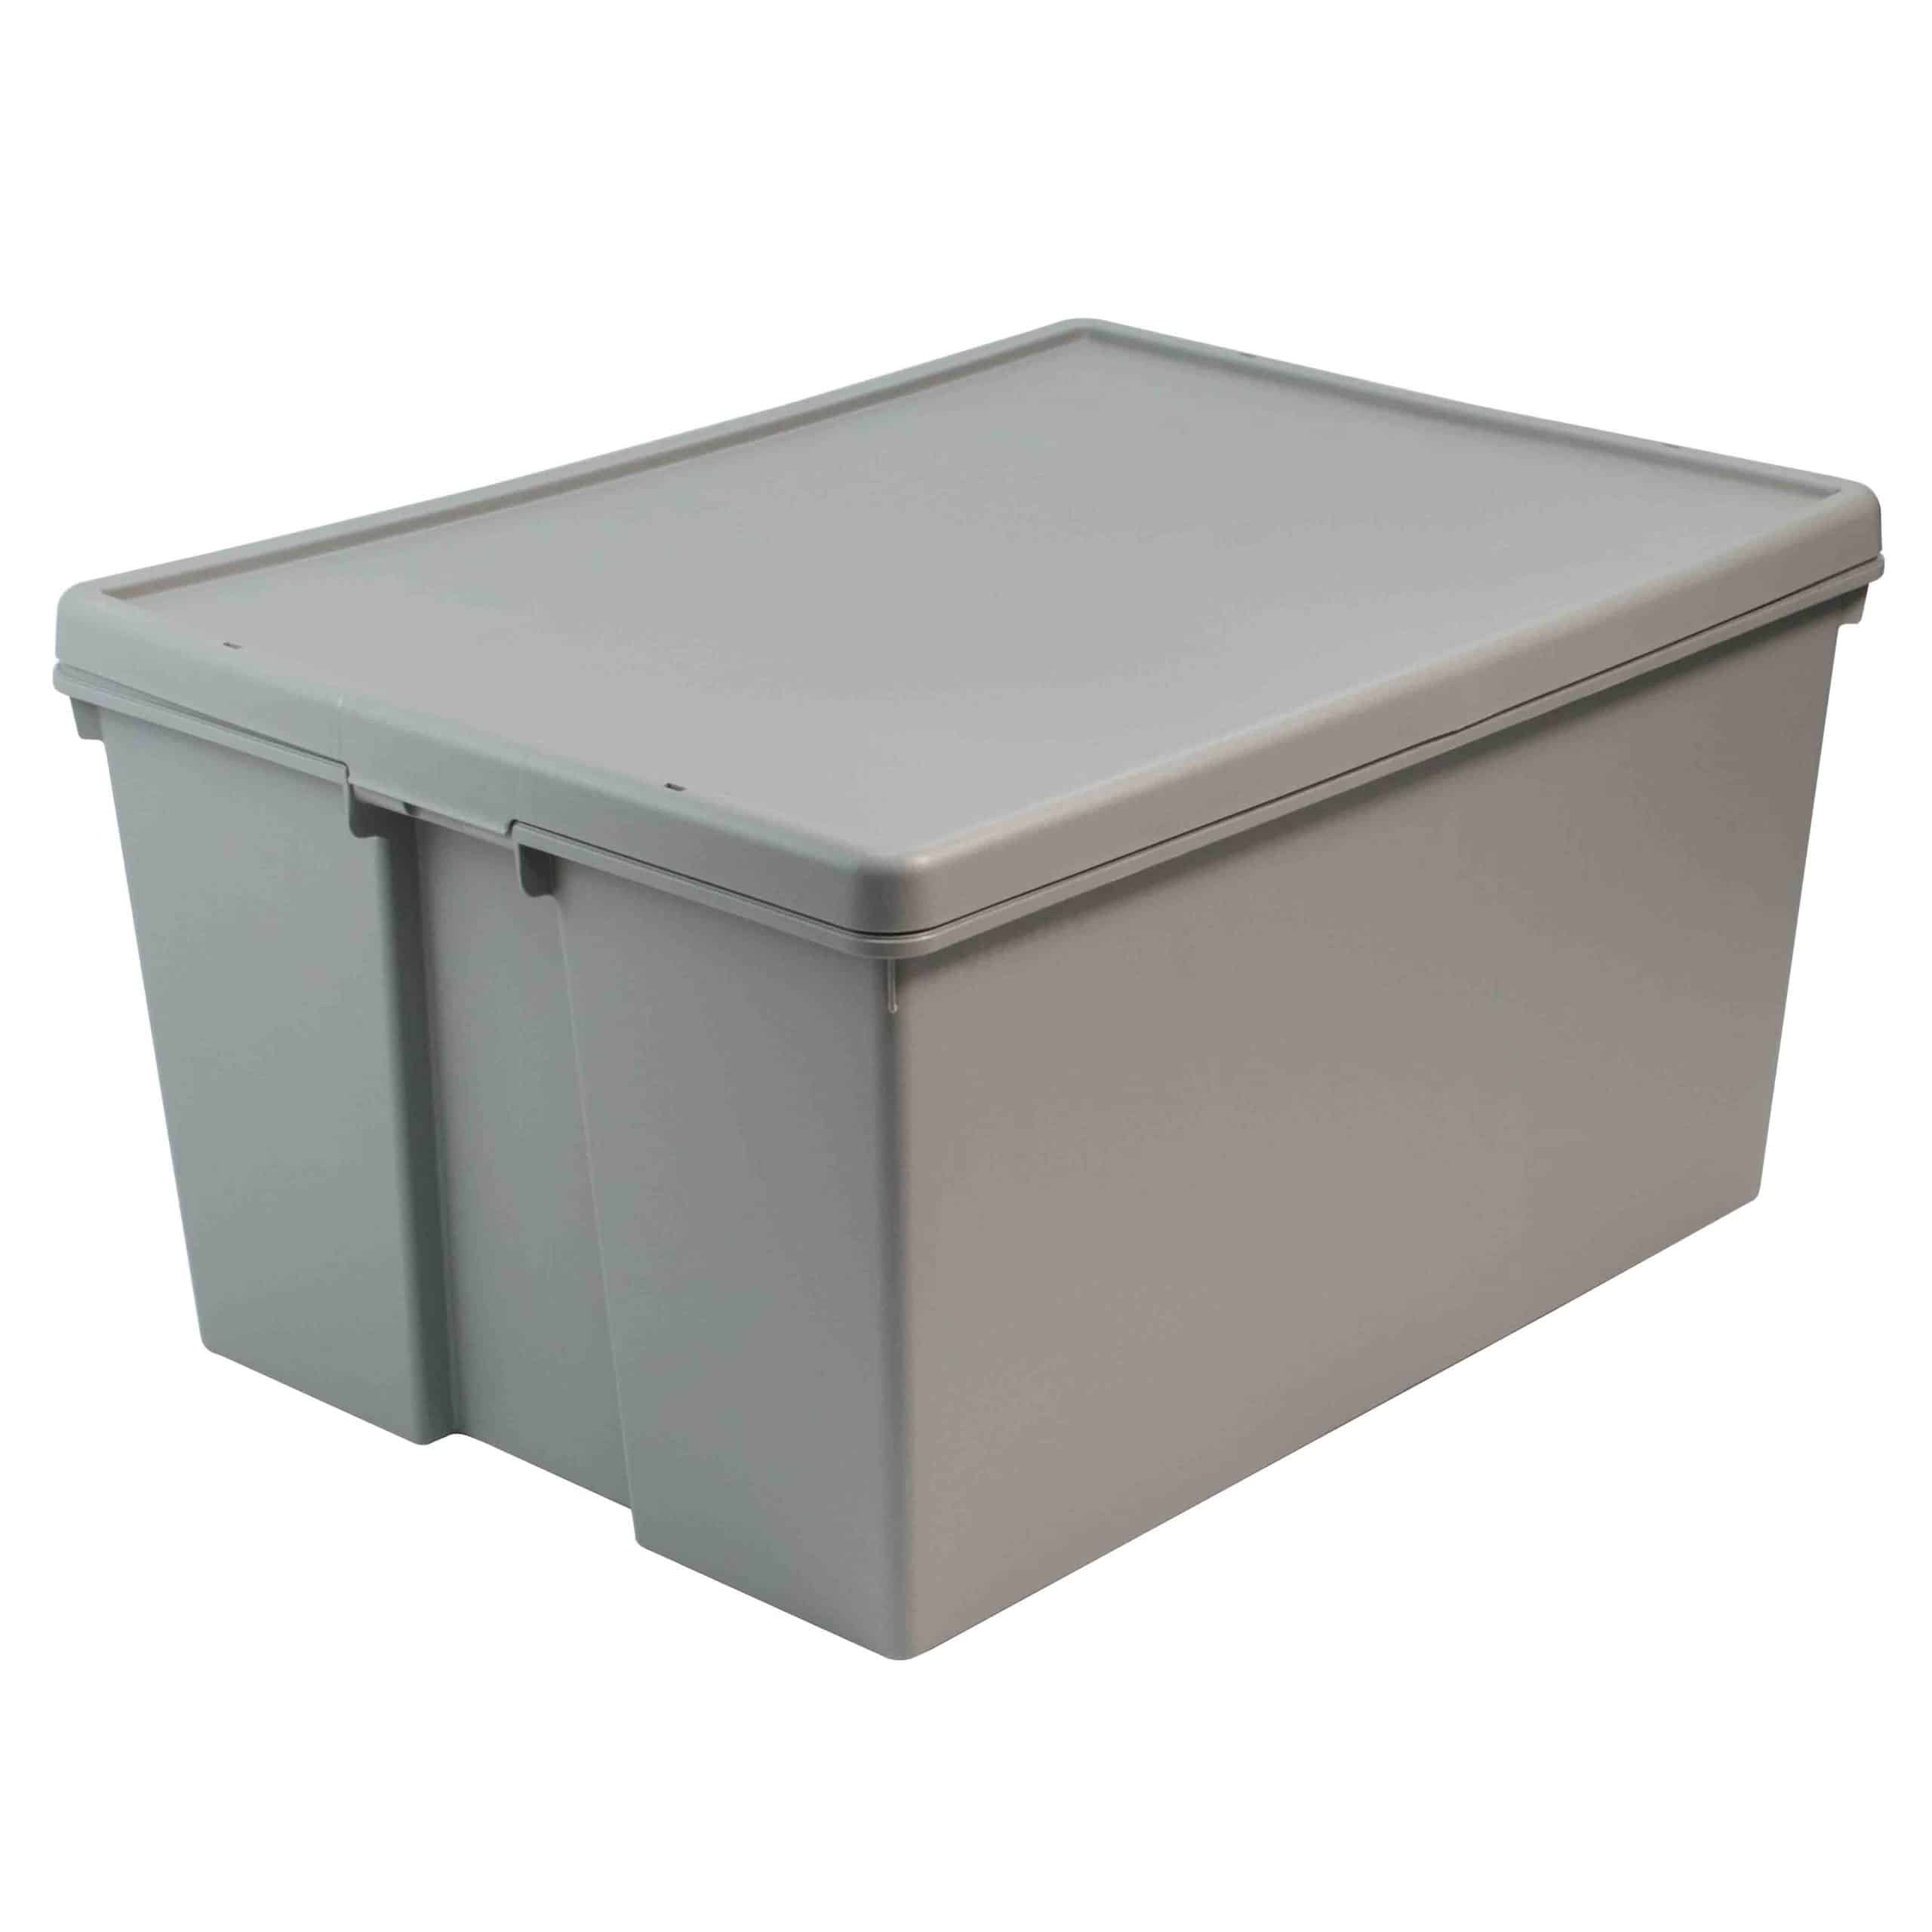 150 Litre Upcycled Plastic Storage Box